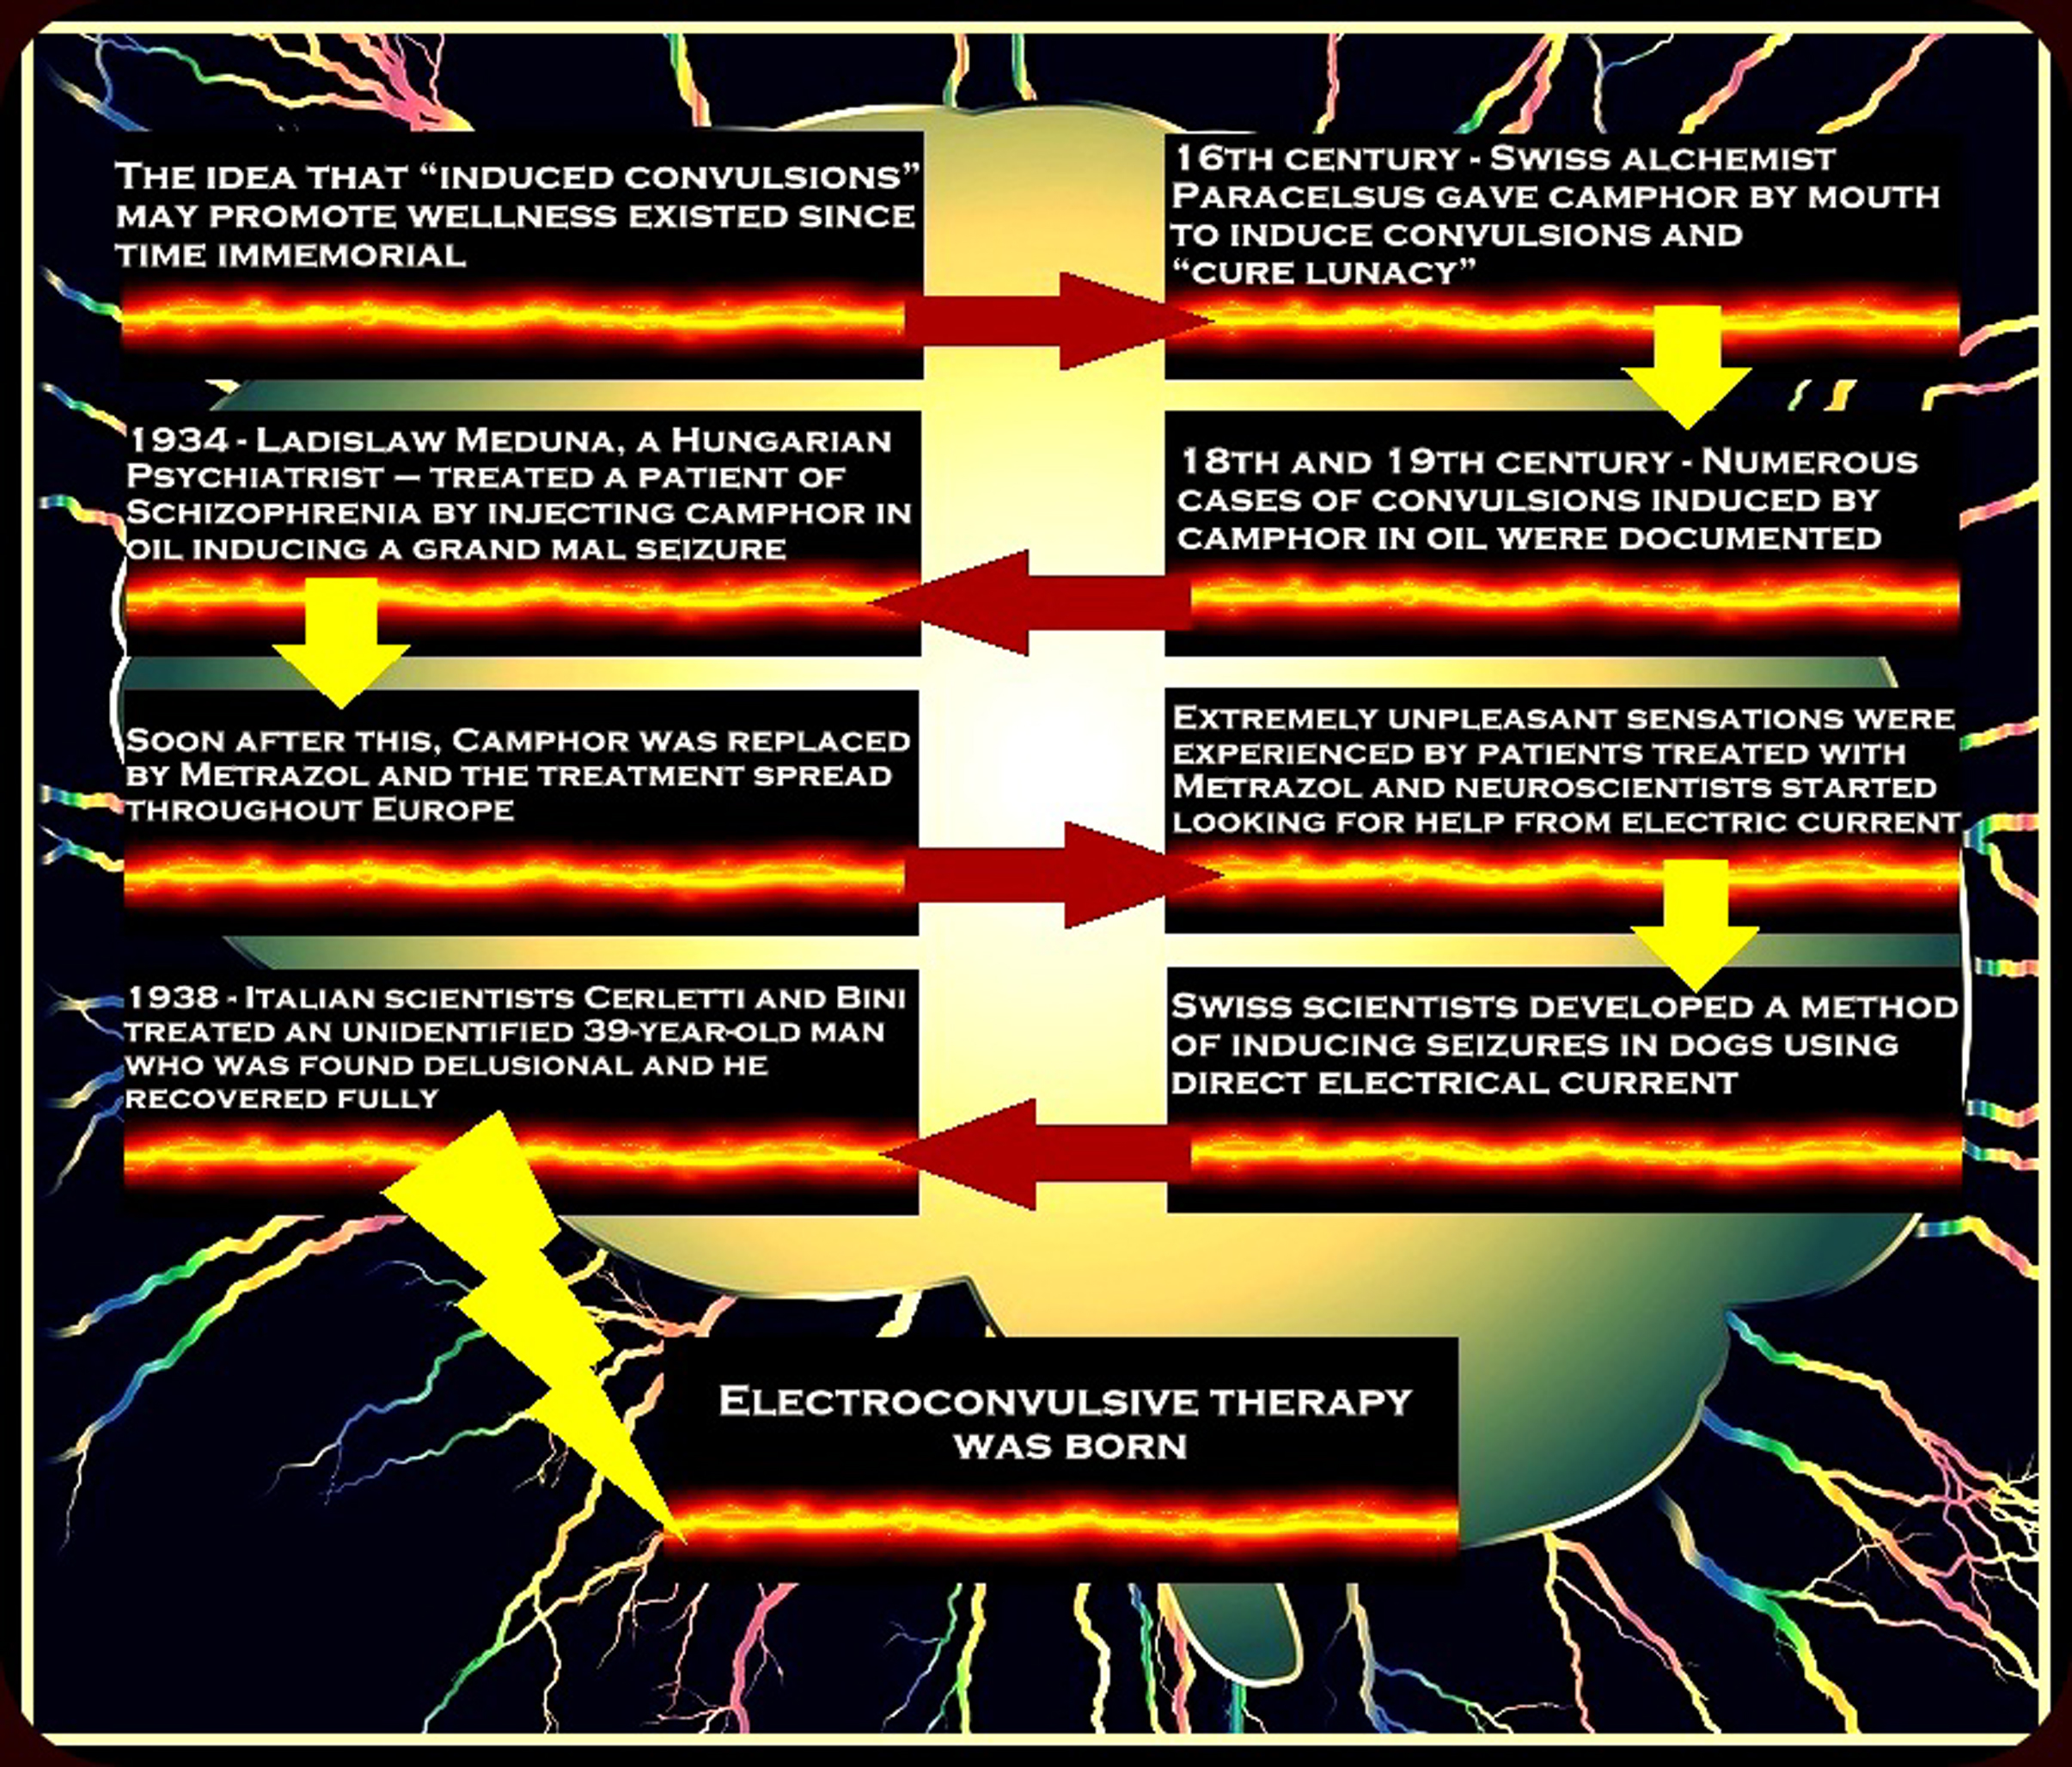 a discussion on electroconvulsive therapy in treating depression Treating depression with ect  electroconvulsive therapy (ect), referred to as shock therapy, is form a treatment for depression and mental illness during the.